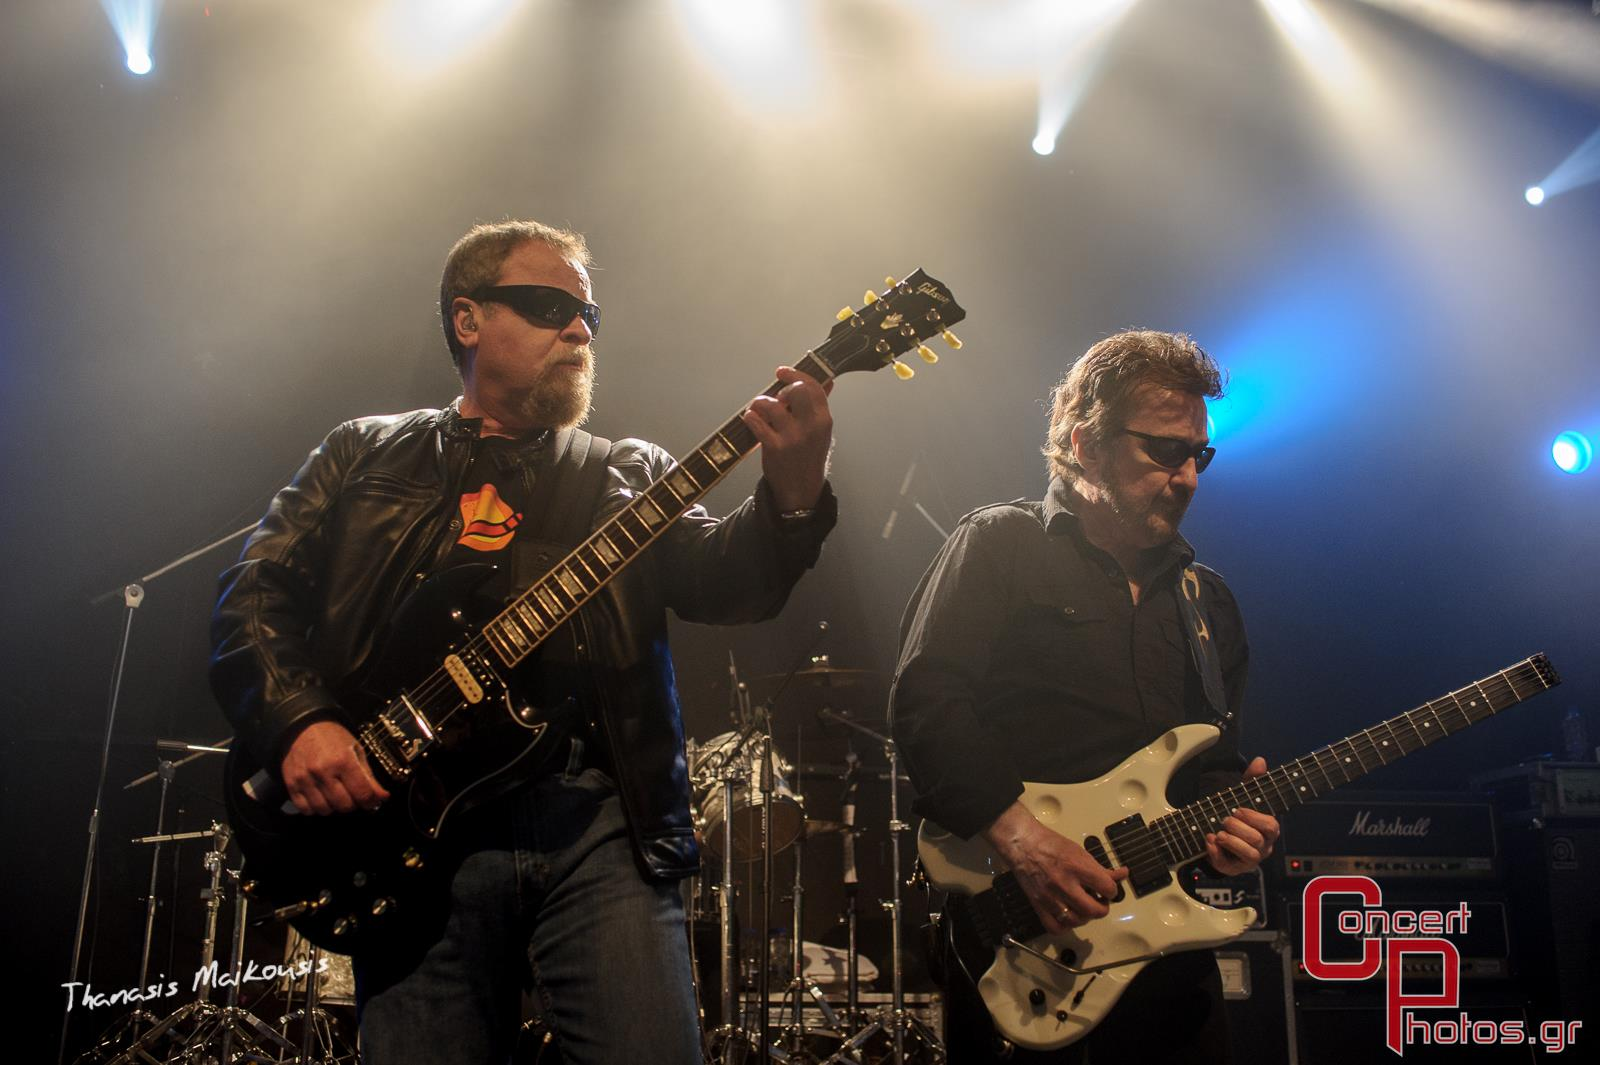 Blue Oyster Cult & Big Nose Attack-Blue Oyster Cult - Big Nose Attack photographer:  - ConcertPhotos-3214